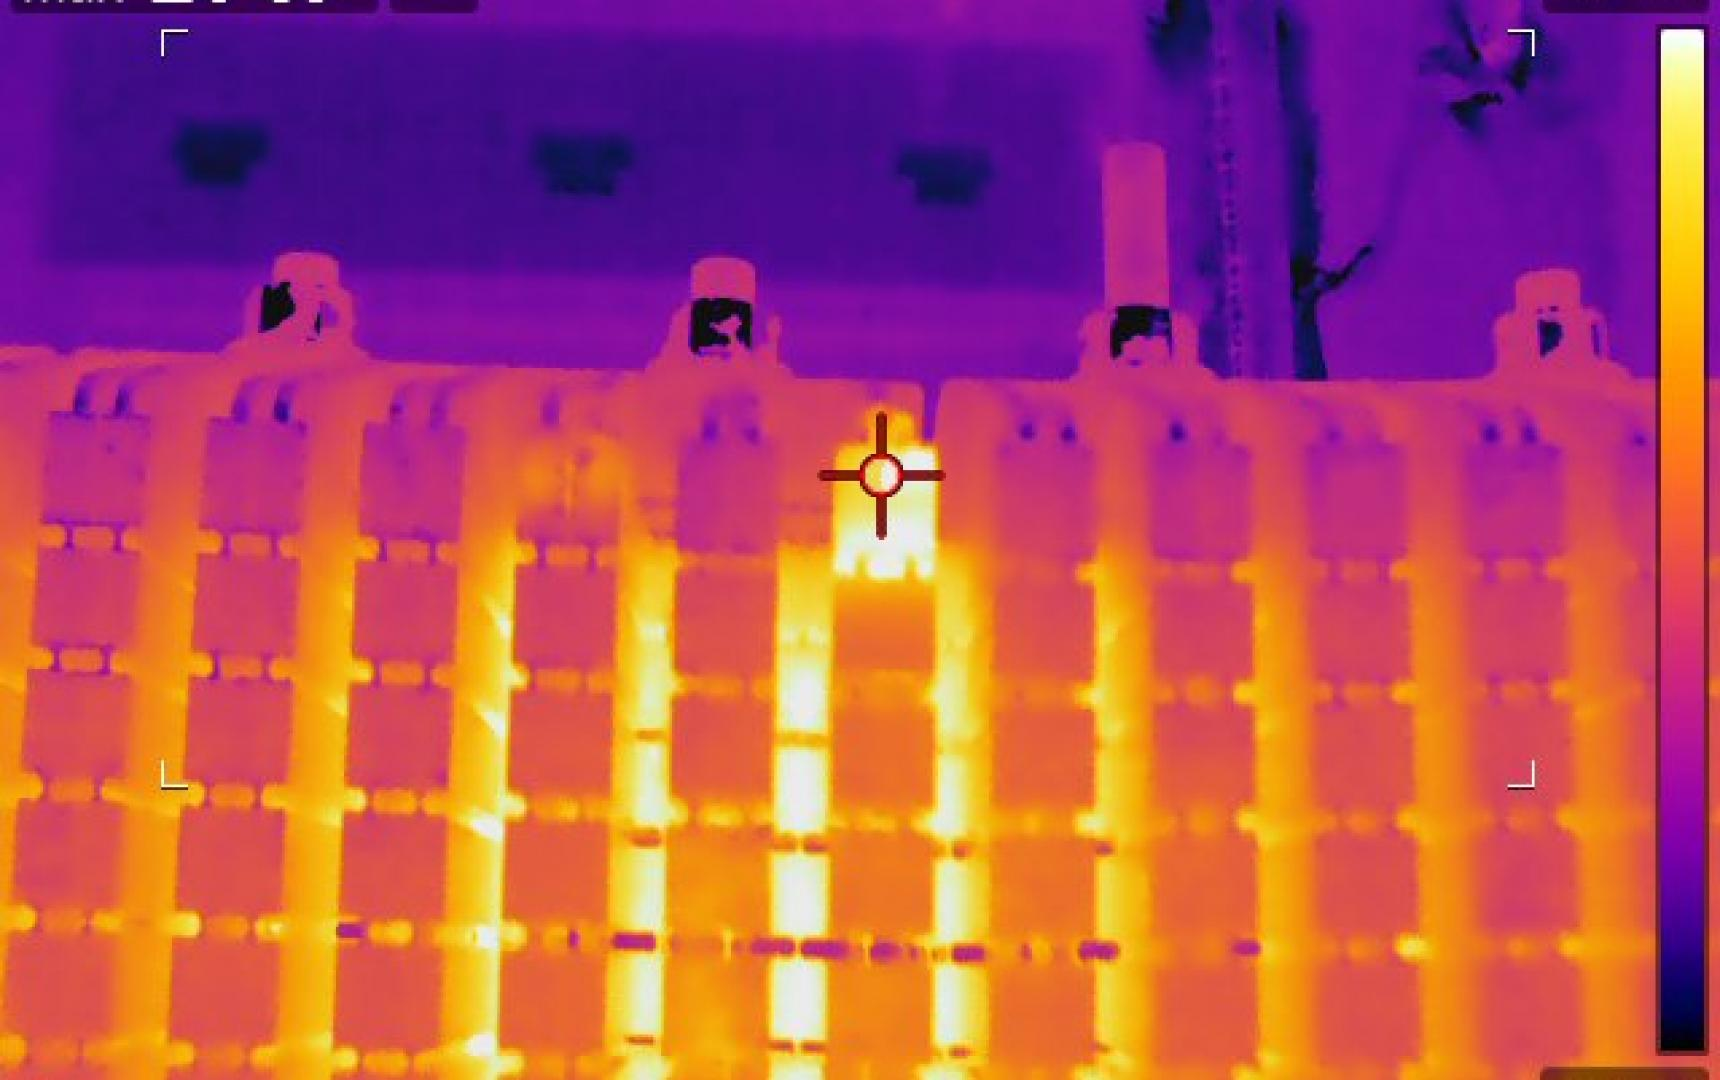 infrared core loop inspections image